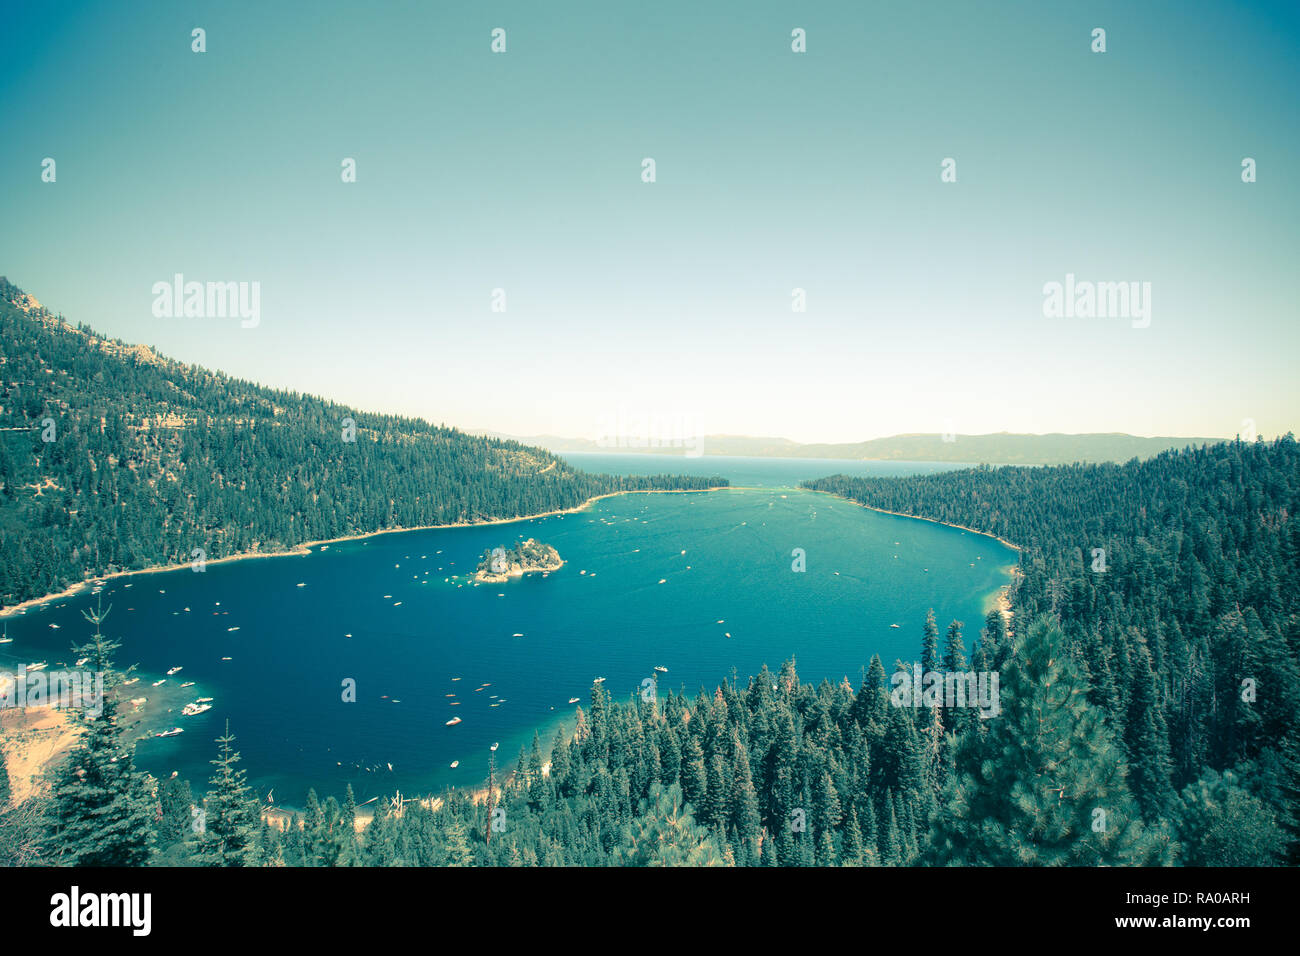 Emerald Bay Lake Tahoe California with a vintage tone effect Stock Photo